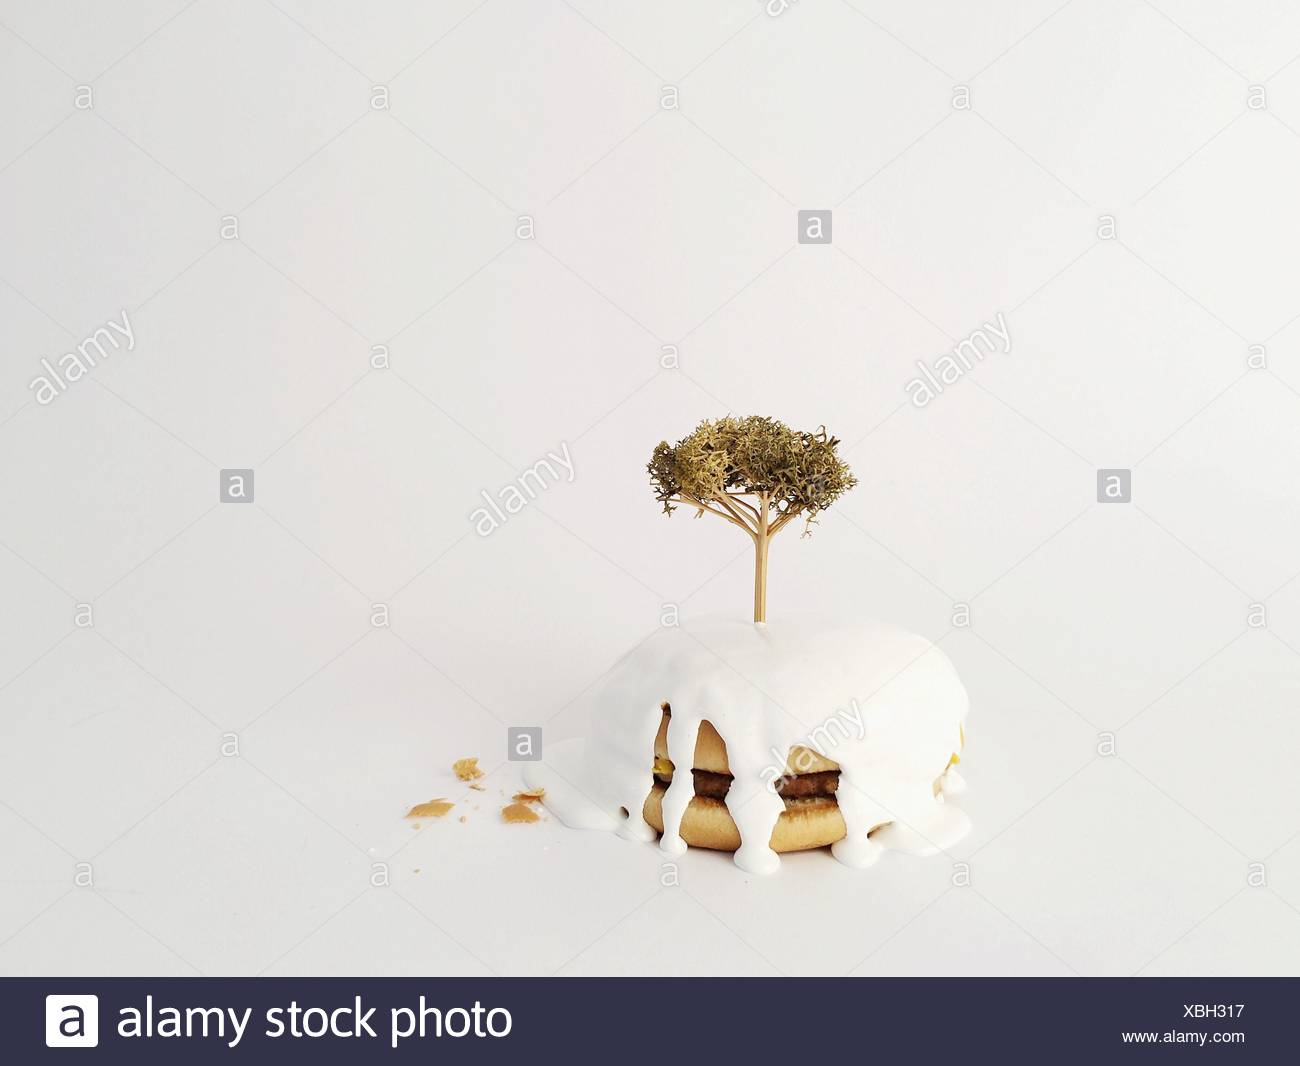 Plant Of Burger Against White Background - Stock Image